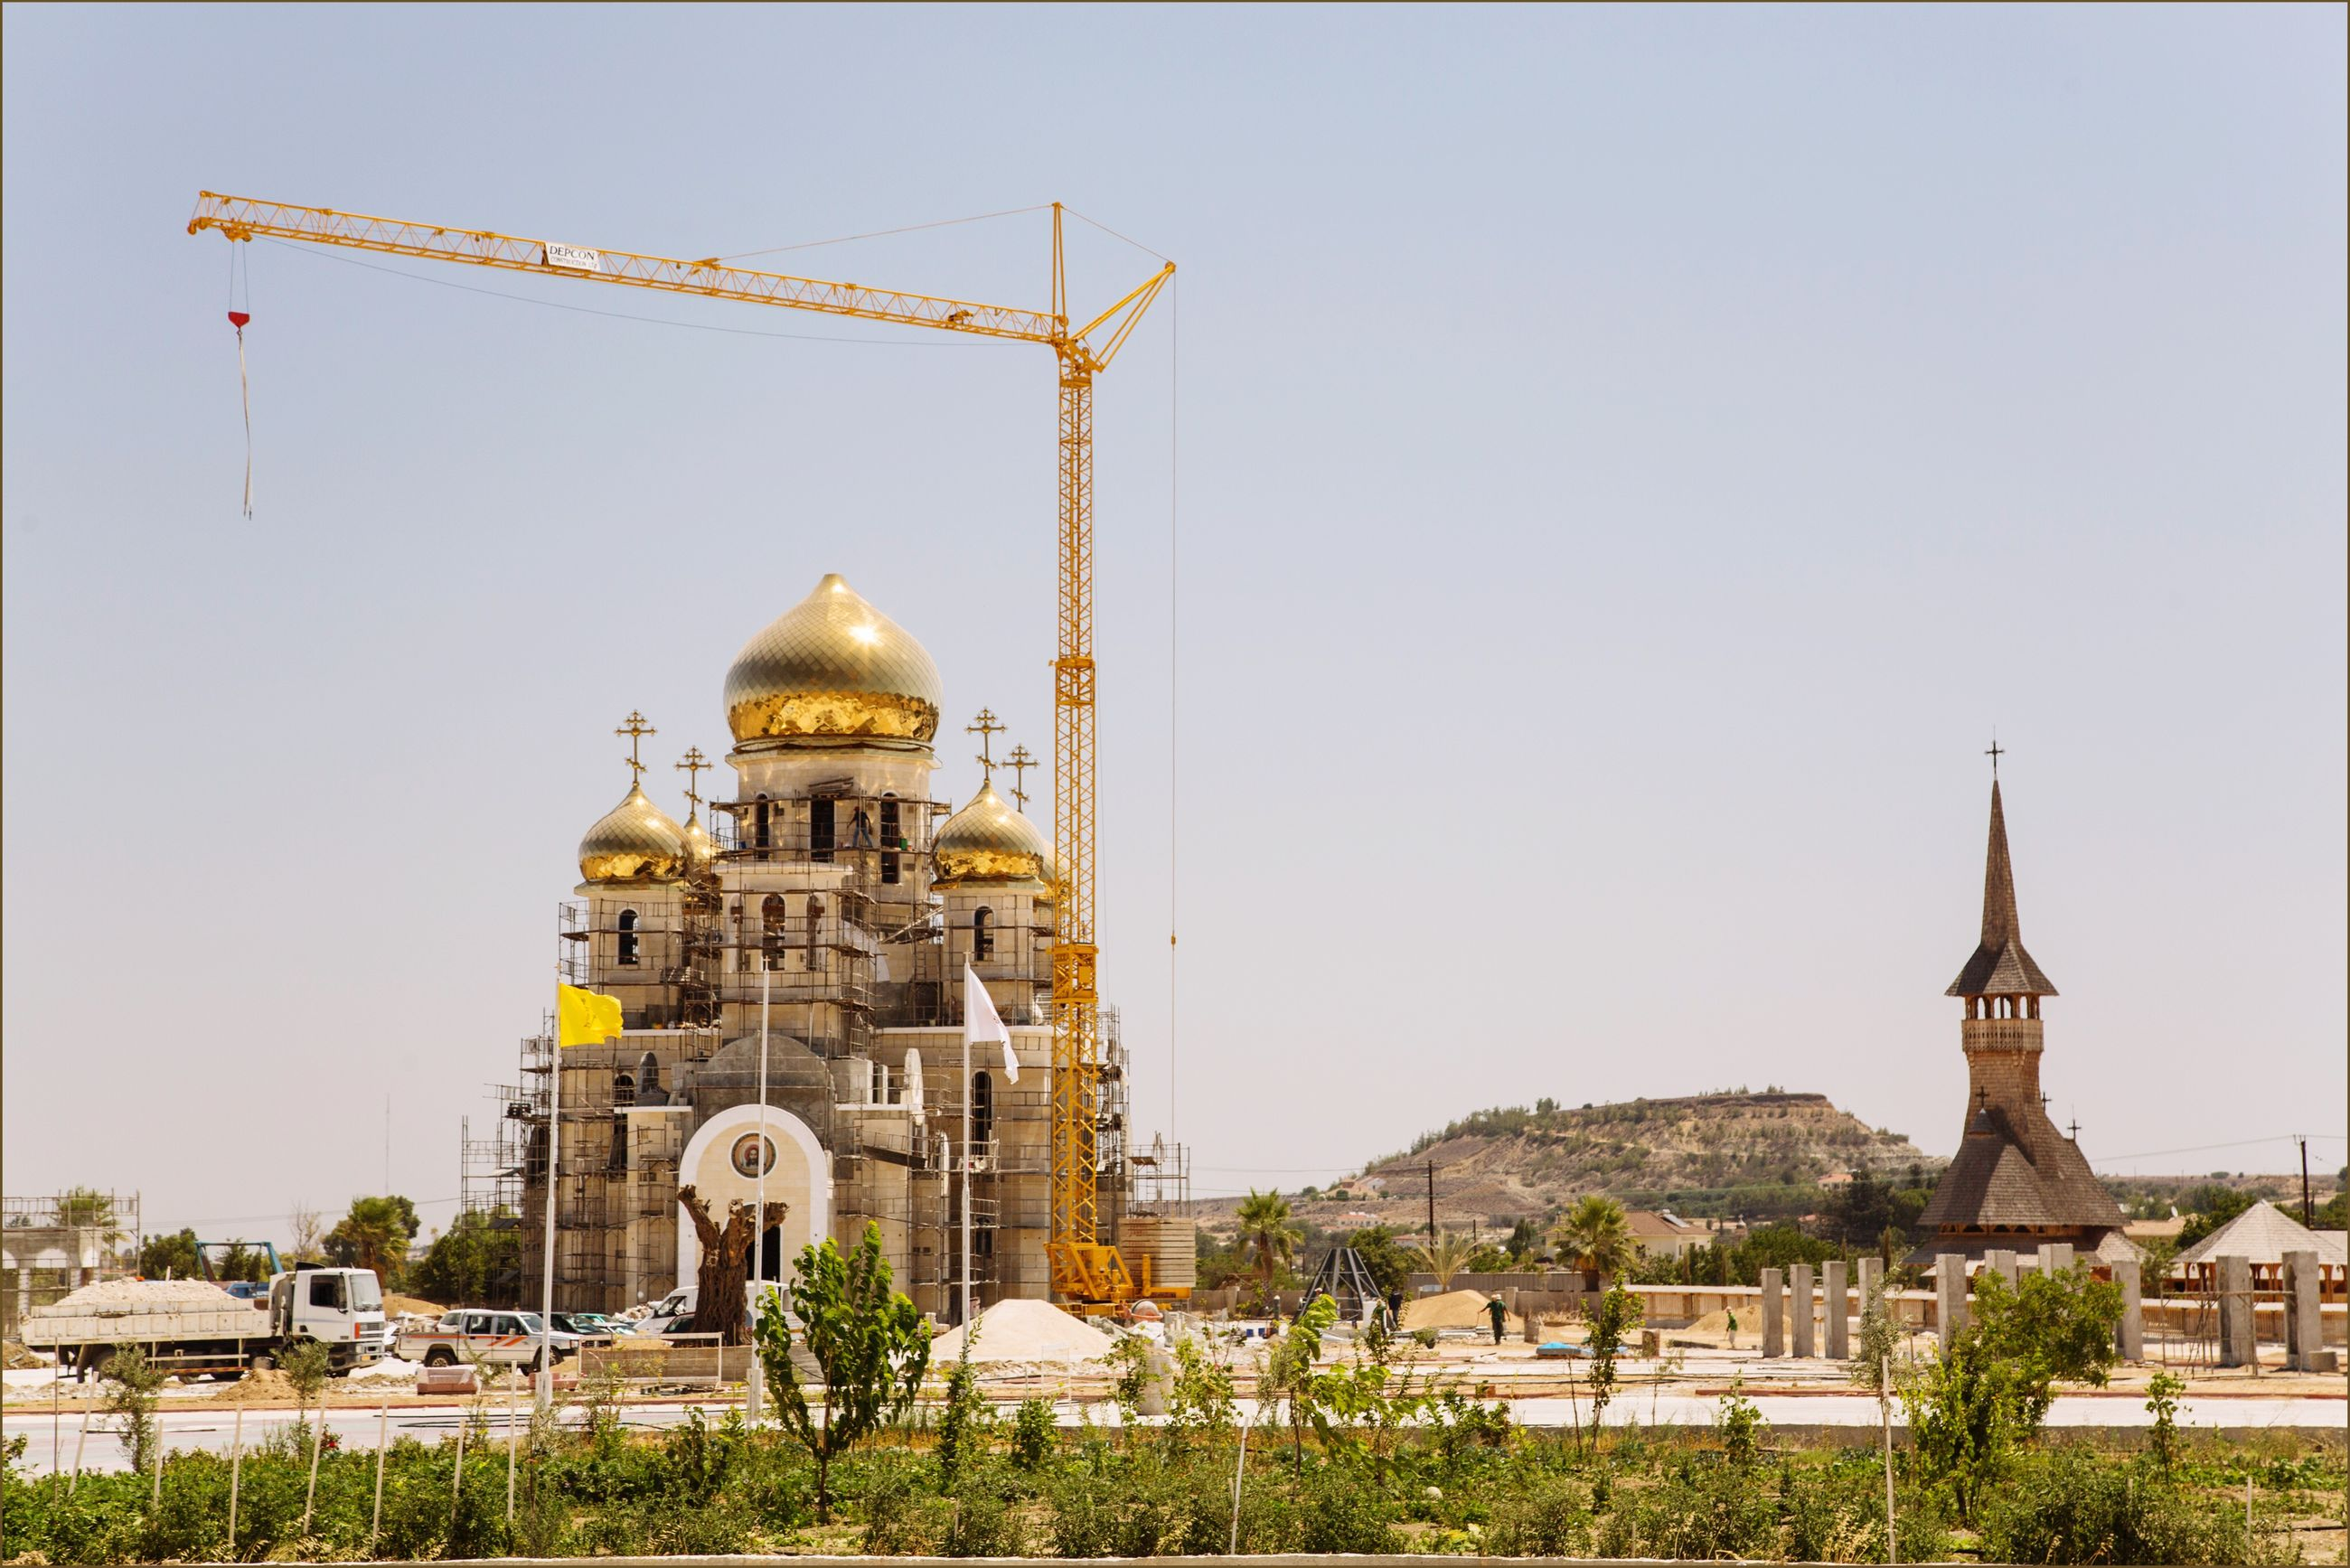 architecture, built structure, building exterior, religion, travel destinations, dome, city, place of worship, sky, cultures, spirituality, no people, outdoors, gold colored, day